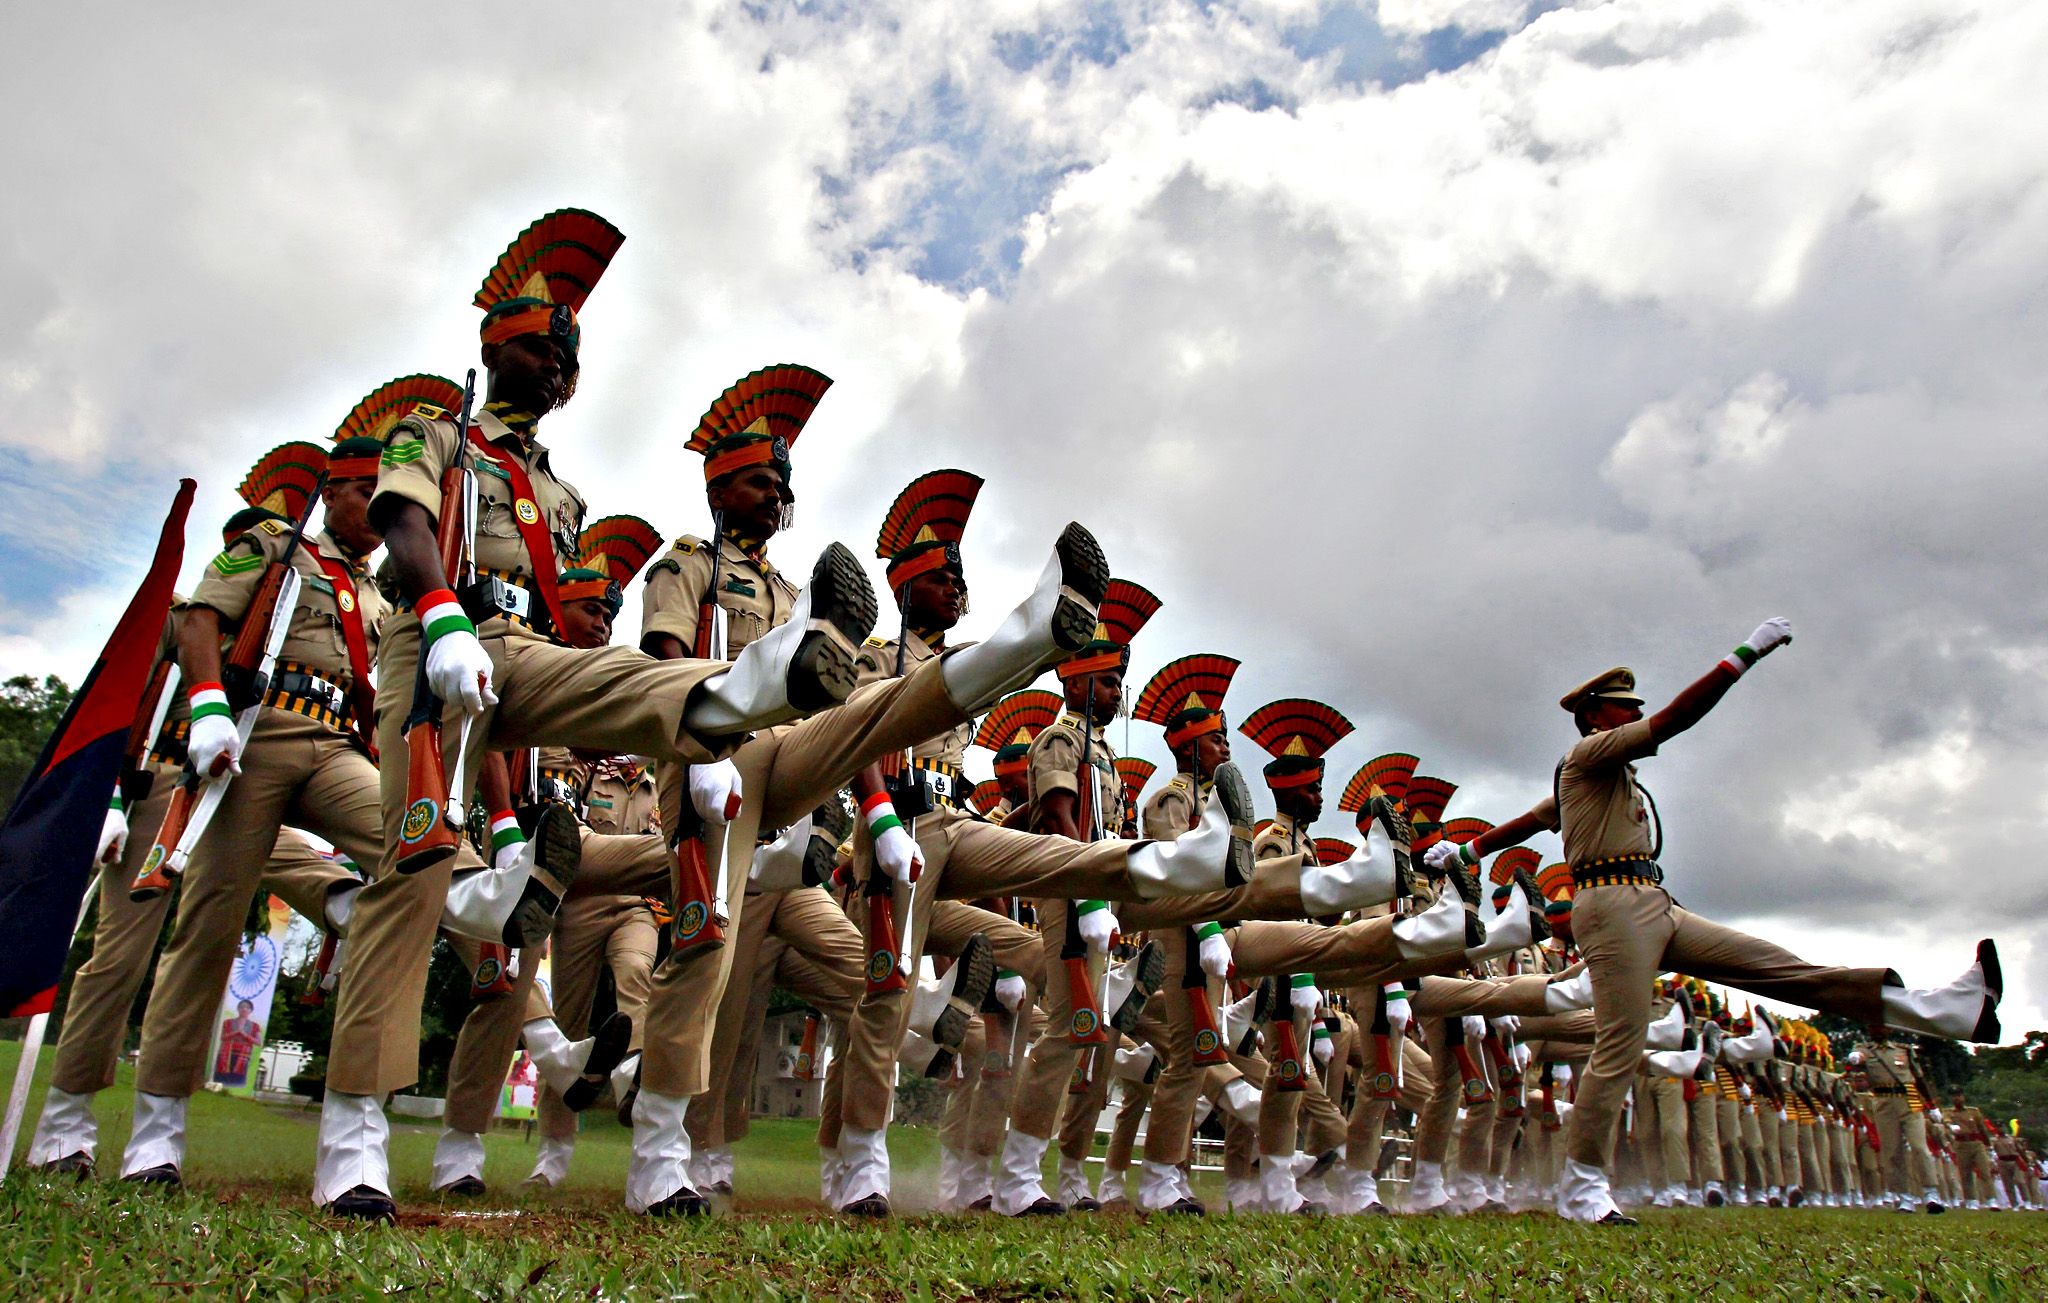 Members of India's Tripura State Rifles (TSR) take part in the full-dress rehearsal for India's Independence Day celebrations in Agartala, India, August 13, 2015. India commemorates its Independence Day on August 15.